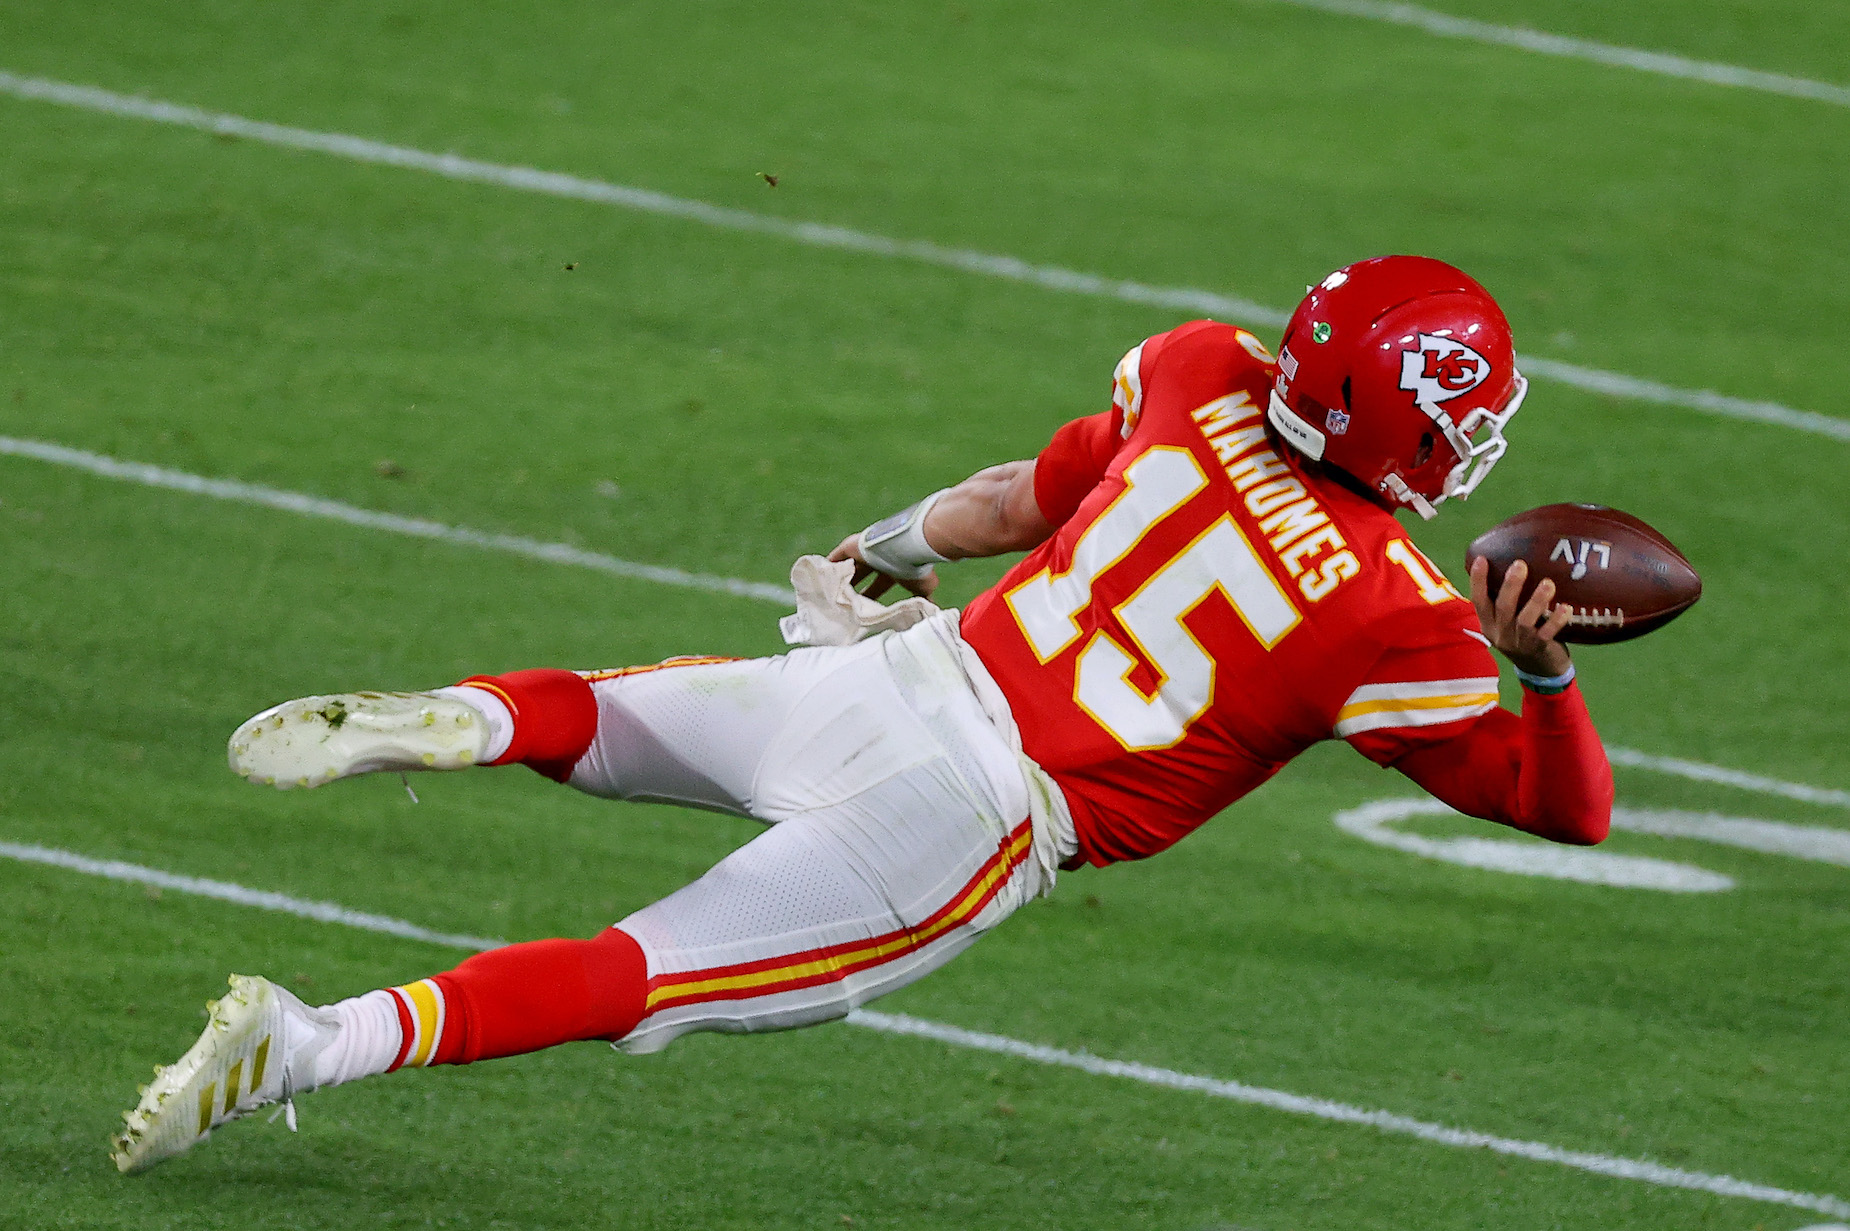 Kansas City Chiefs quarterback Patrick Mahomes struggled in Super Bowl 55 but still impressed the Tampa Bay Buccaneers receivers.